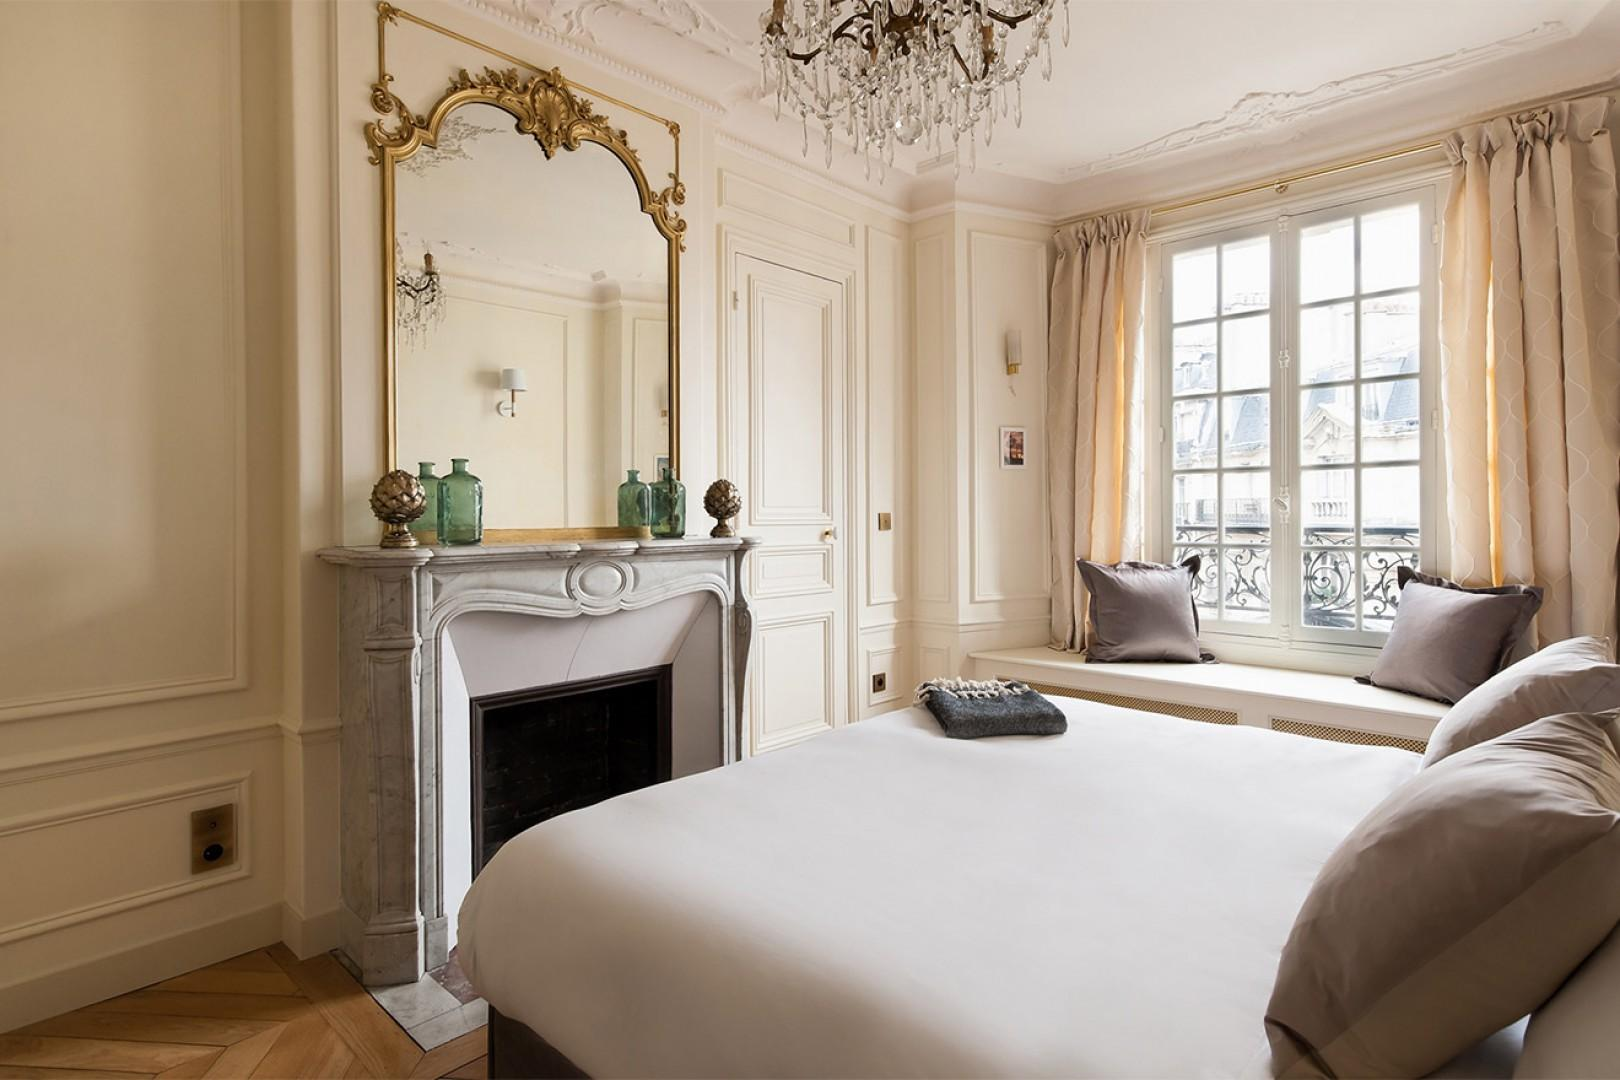 A marble fireplace and large mirror are beautiful features in bedroom 2.